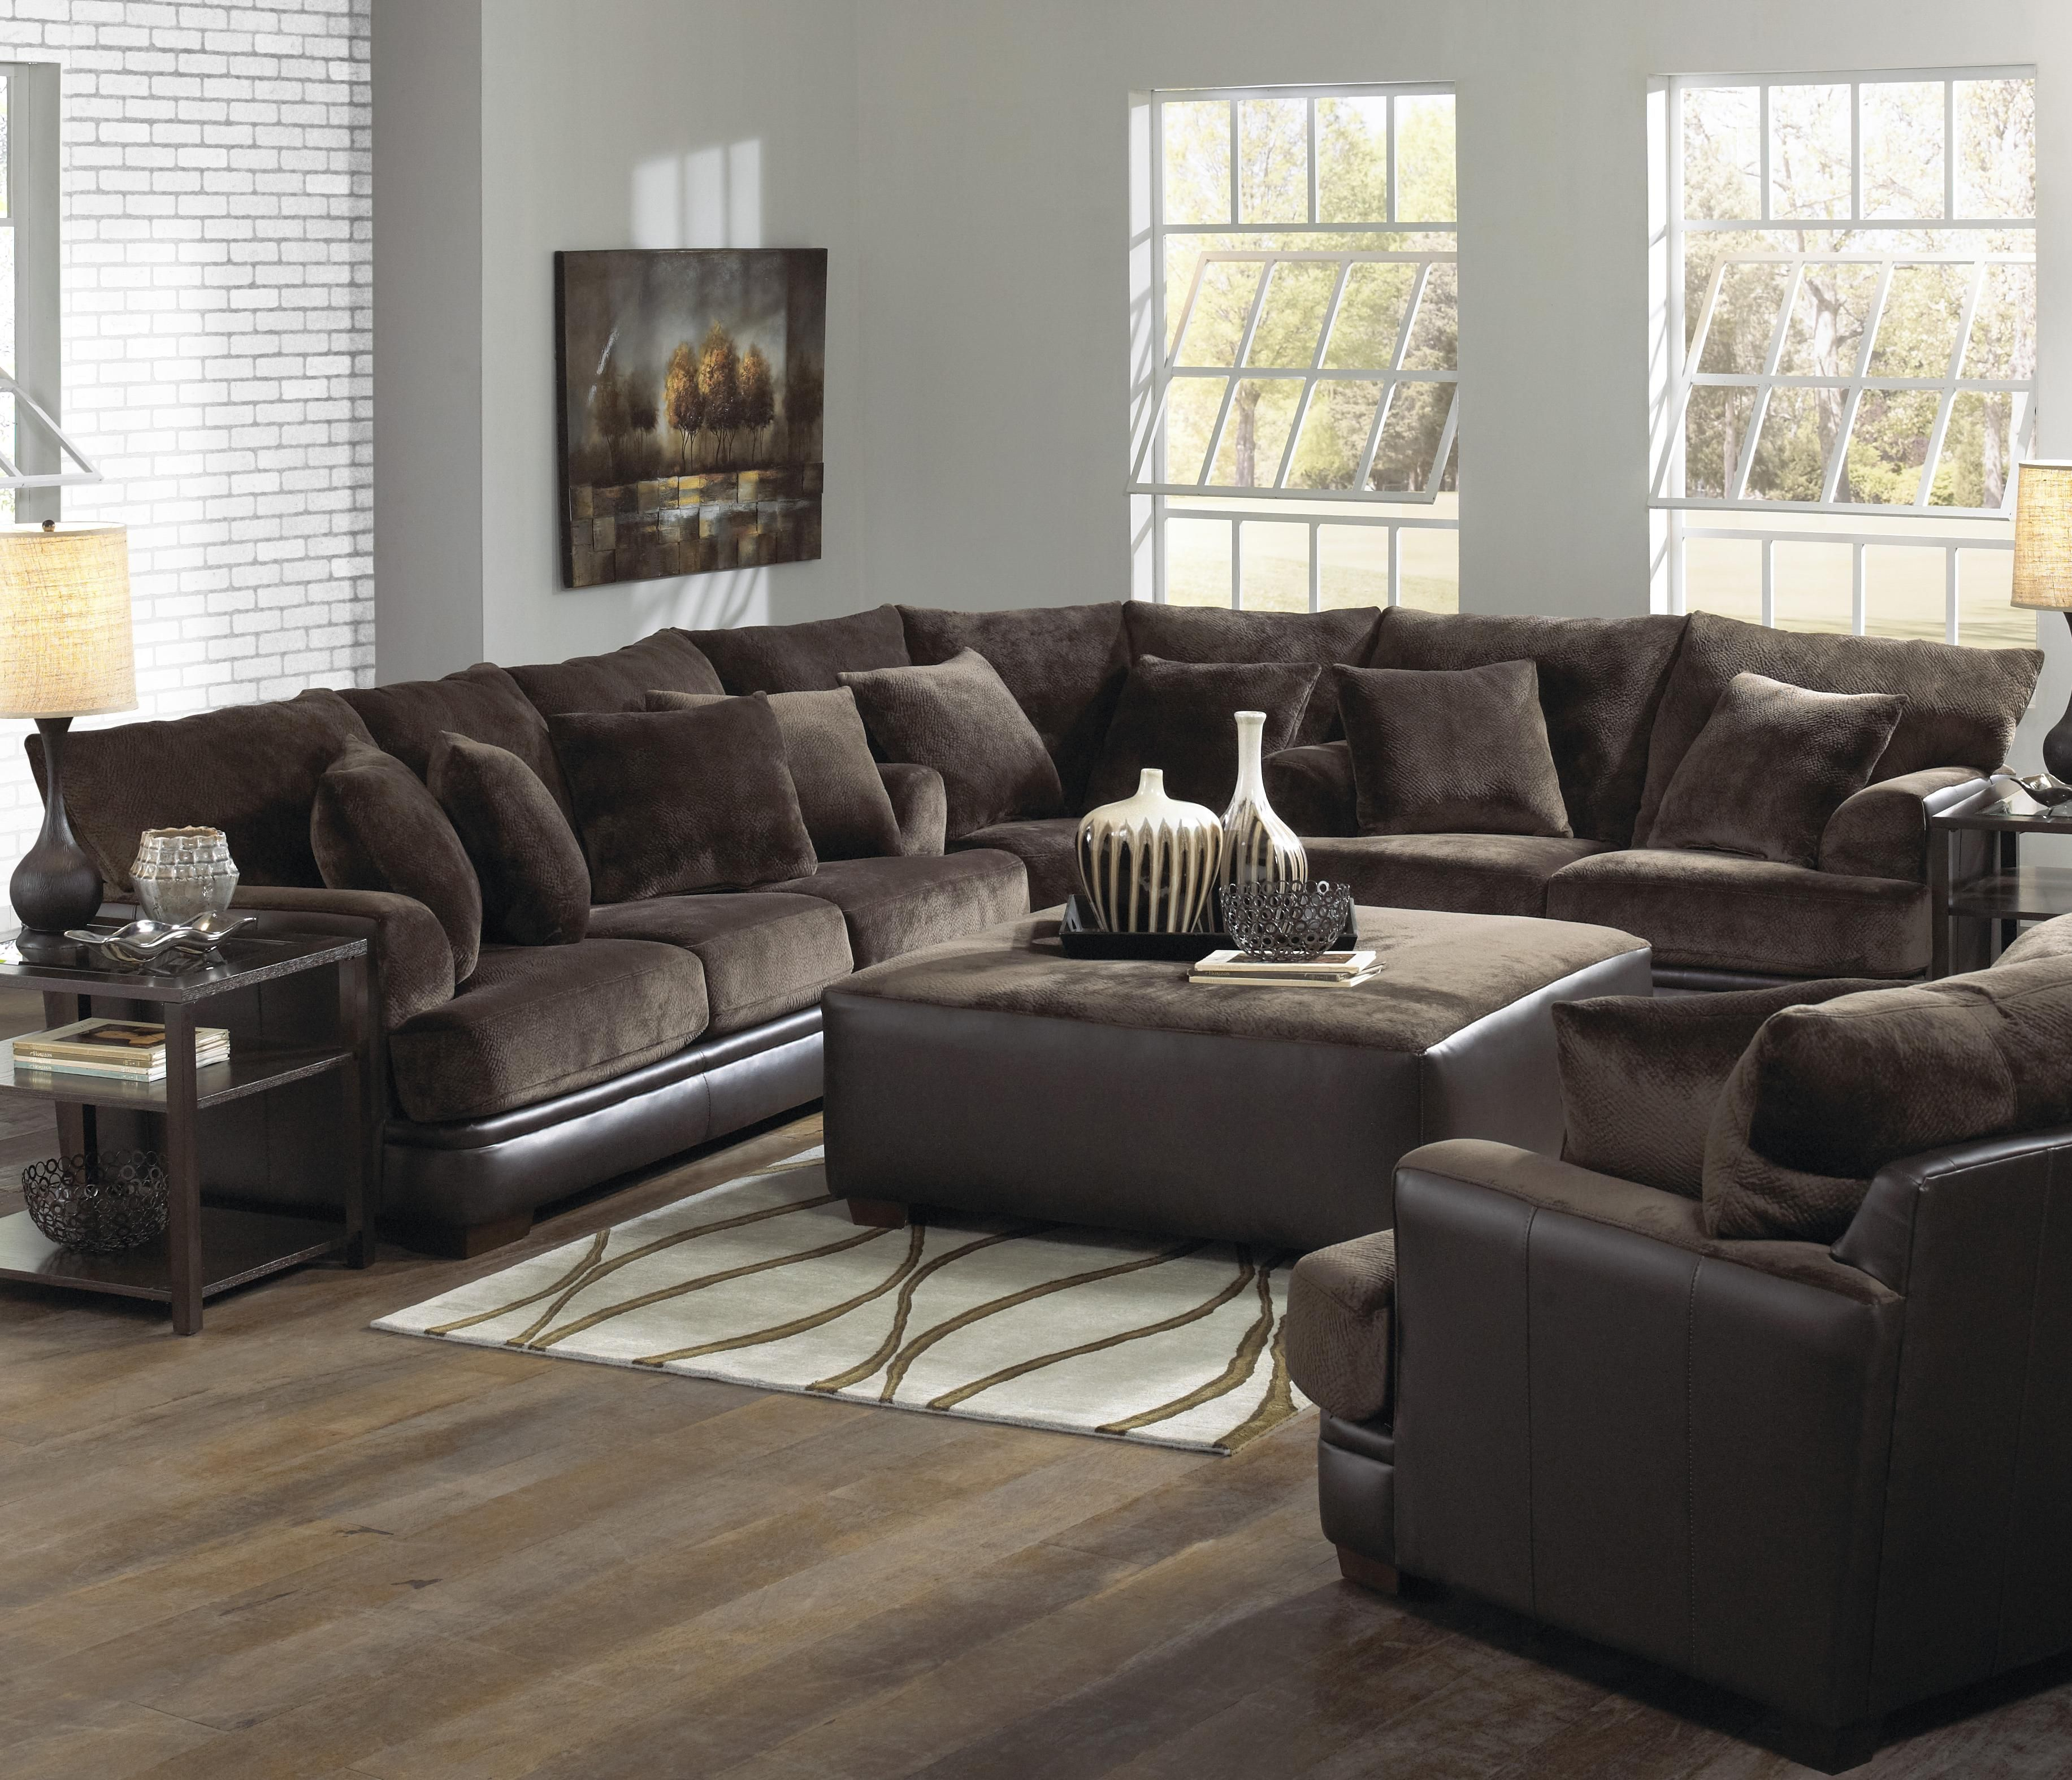 Dark Brown Velvet Couch Plus Black Leather Base Also Cushions Combined With Blo Dark Brown Couch Living Room Brown Couch Living Room Sectional Living Room Sets